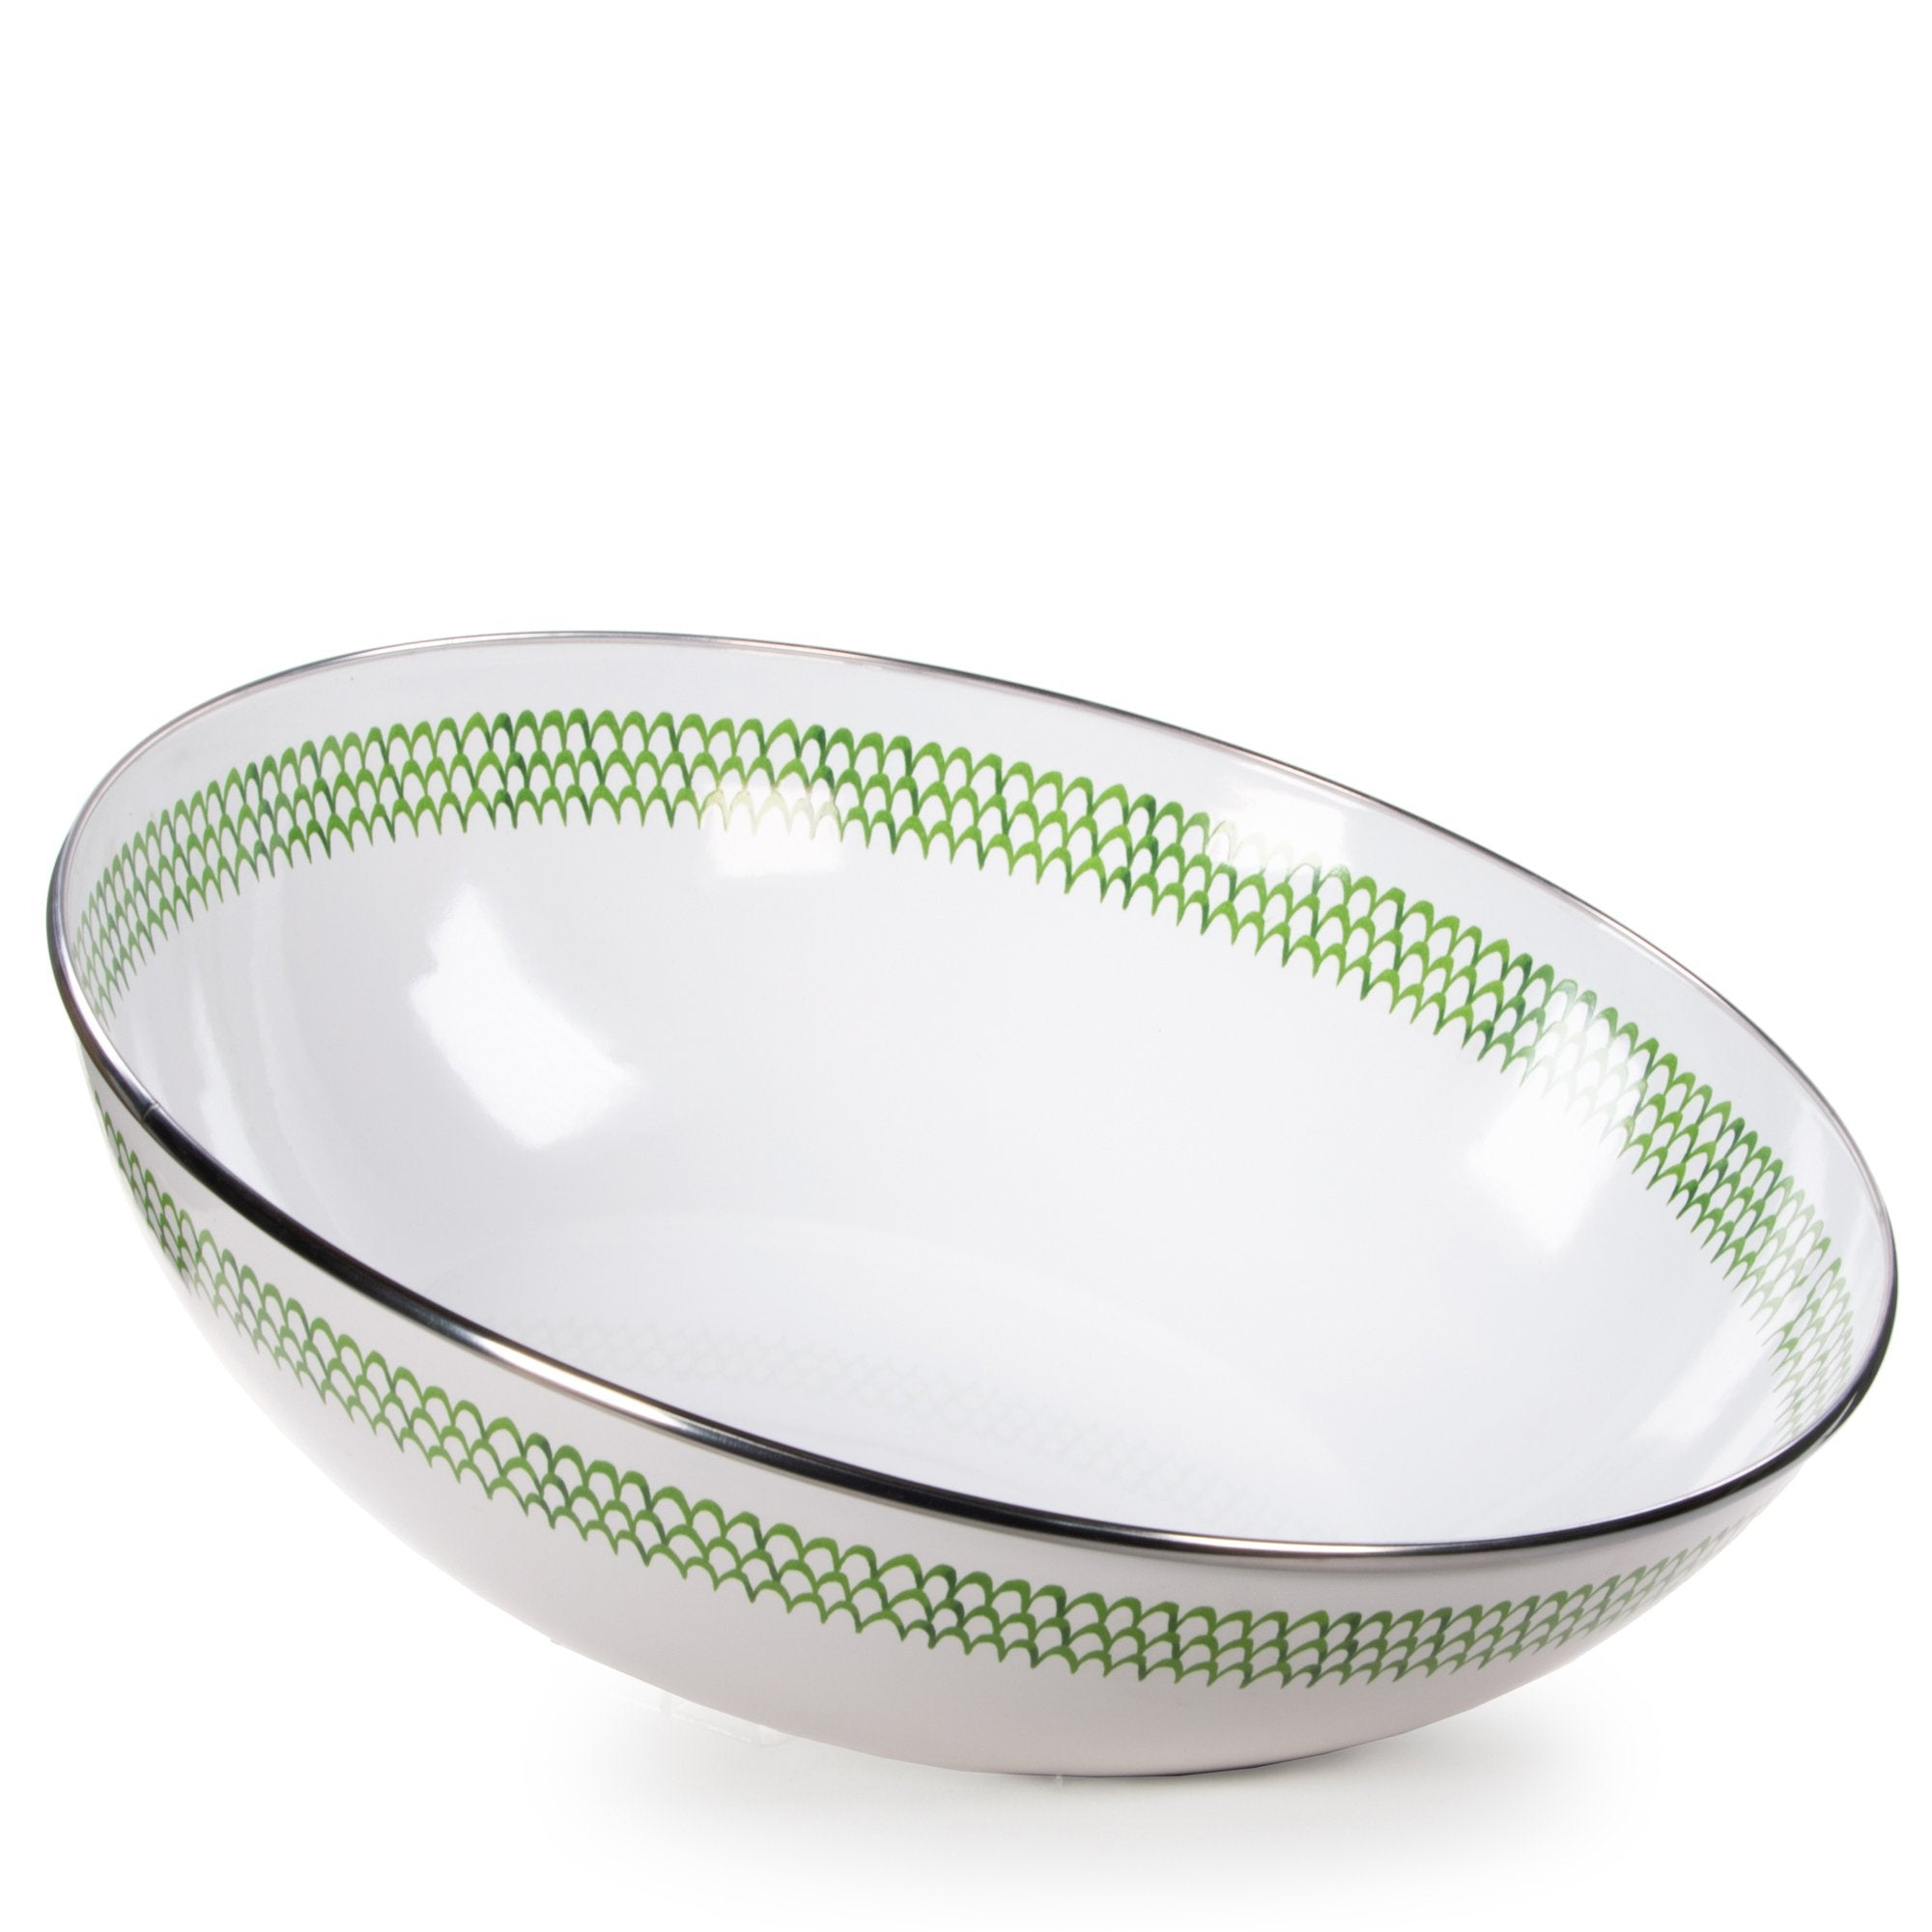 GS18 - Green Scallop Catering Bowl Product 1